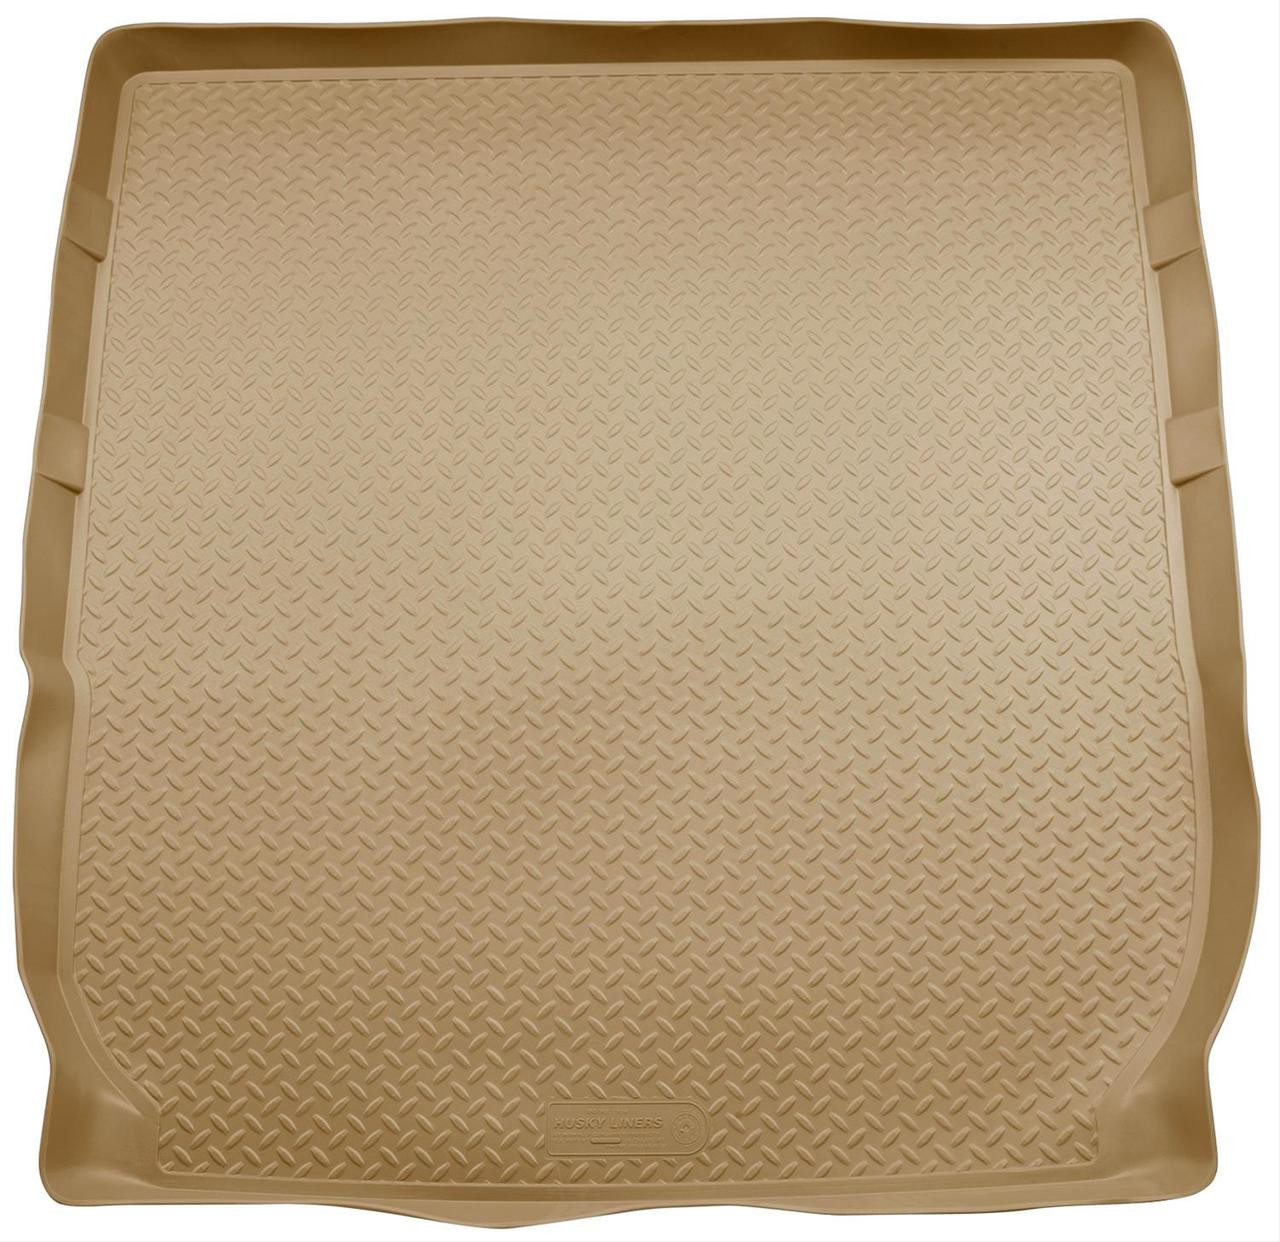 08-16 ENCLAVE/09-16 TRAVERSE (BEHIND 2ND SEAT - FITS OVER FOLDED FLAT 3RD ROW SEAT) REAR LINER TAN